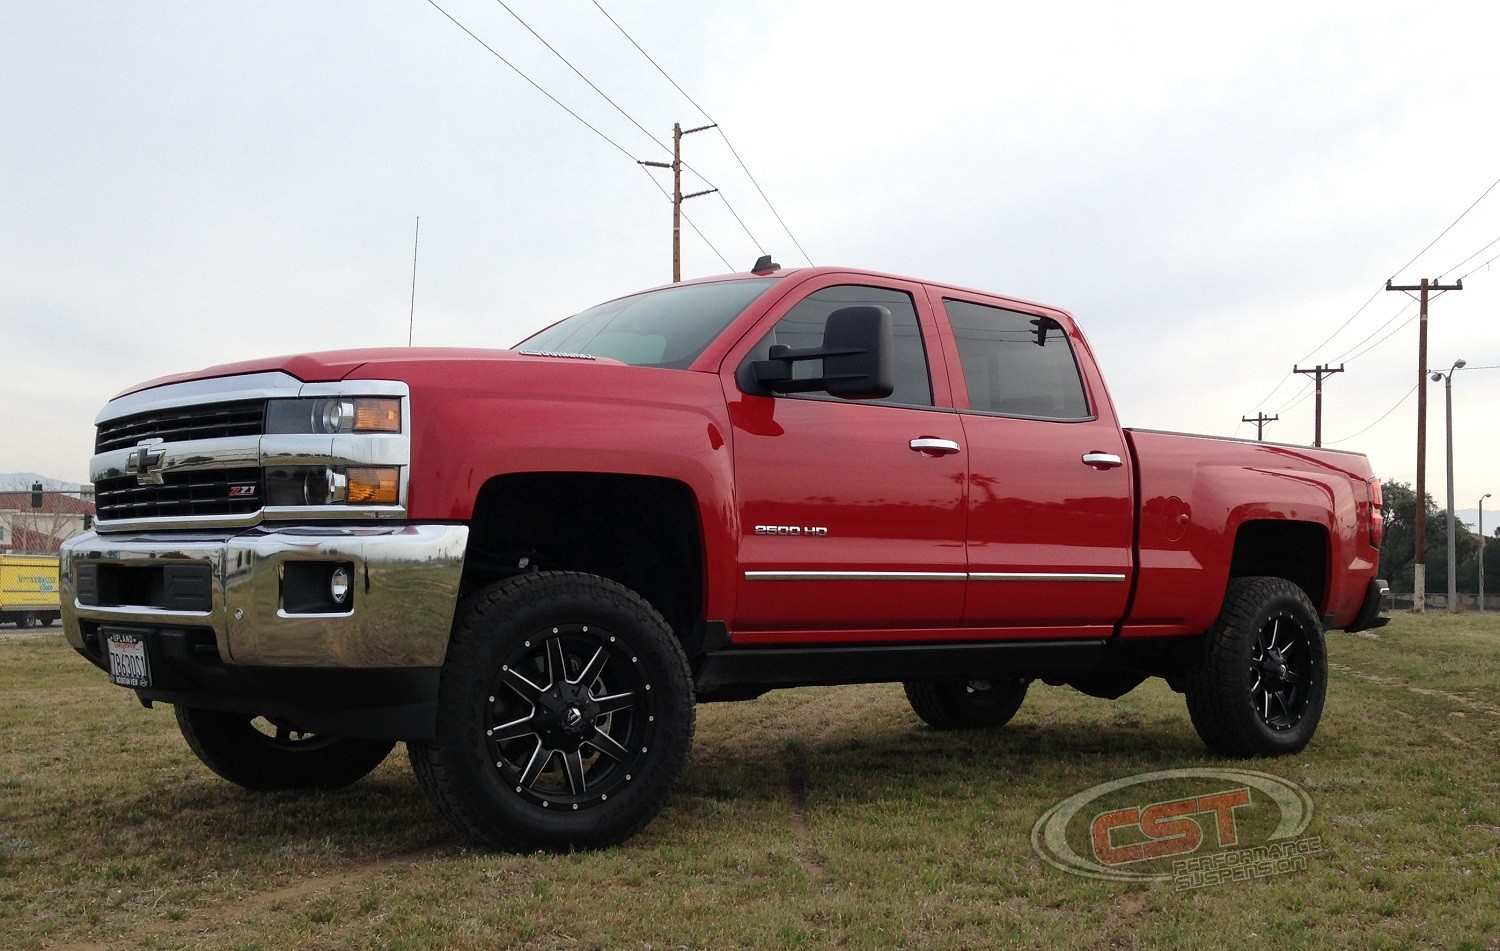 2011 2017 chevy silverado gmc sierra 2500hd 2wd and 4wd stl stock torsion location lift kit by cst suspension 3 6 front lift 1 rear lift